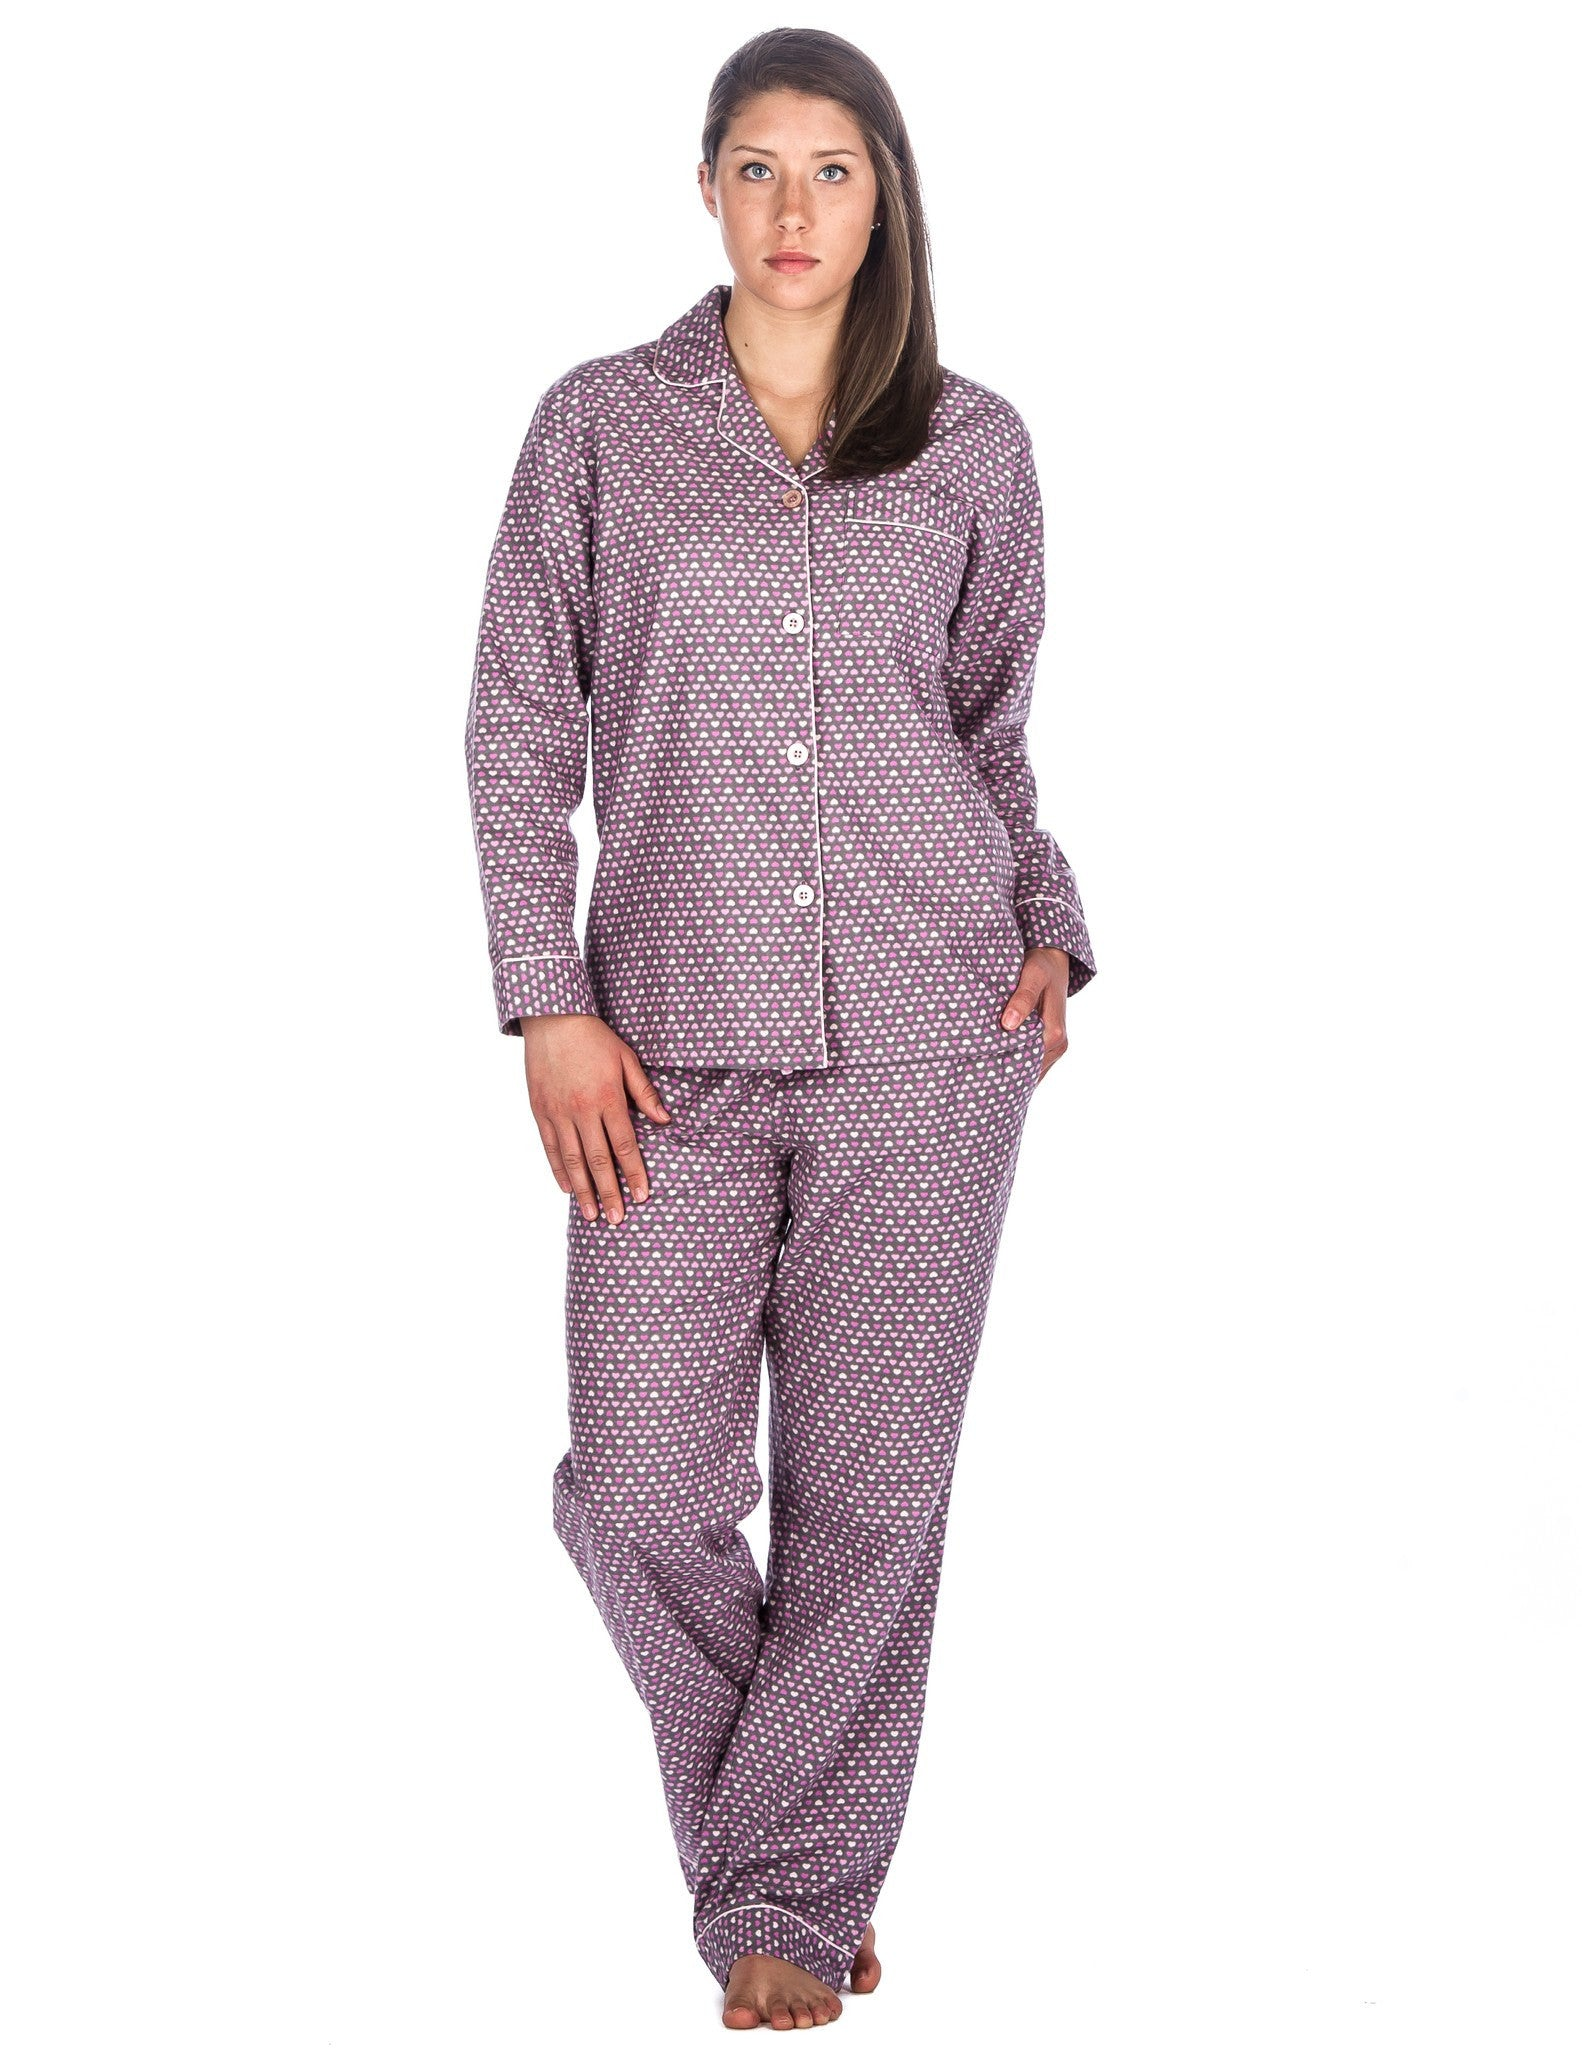 Find a great selection of pajamas for women at rutor-org.ga Shop short pajamas, knit pajamas and more from the best brands. Free shipping and returns.